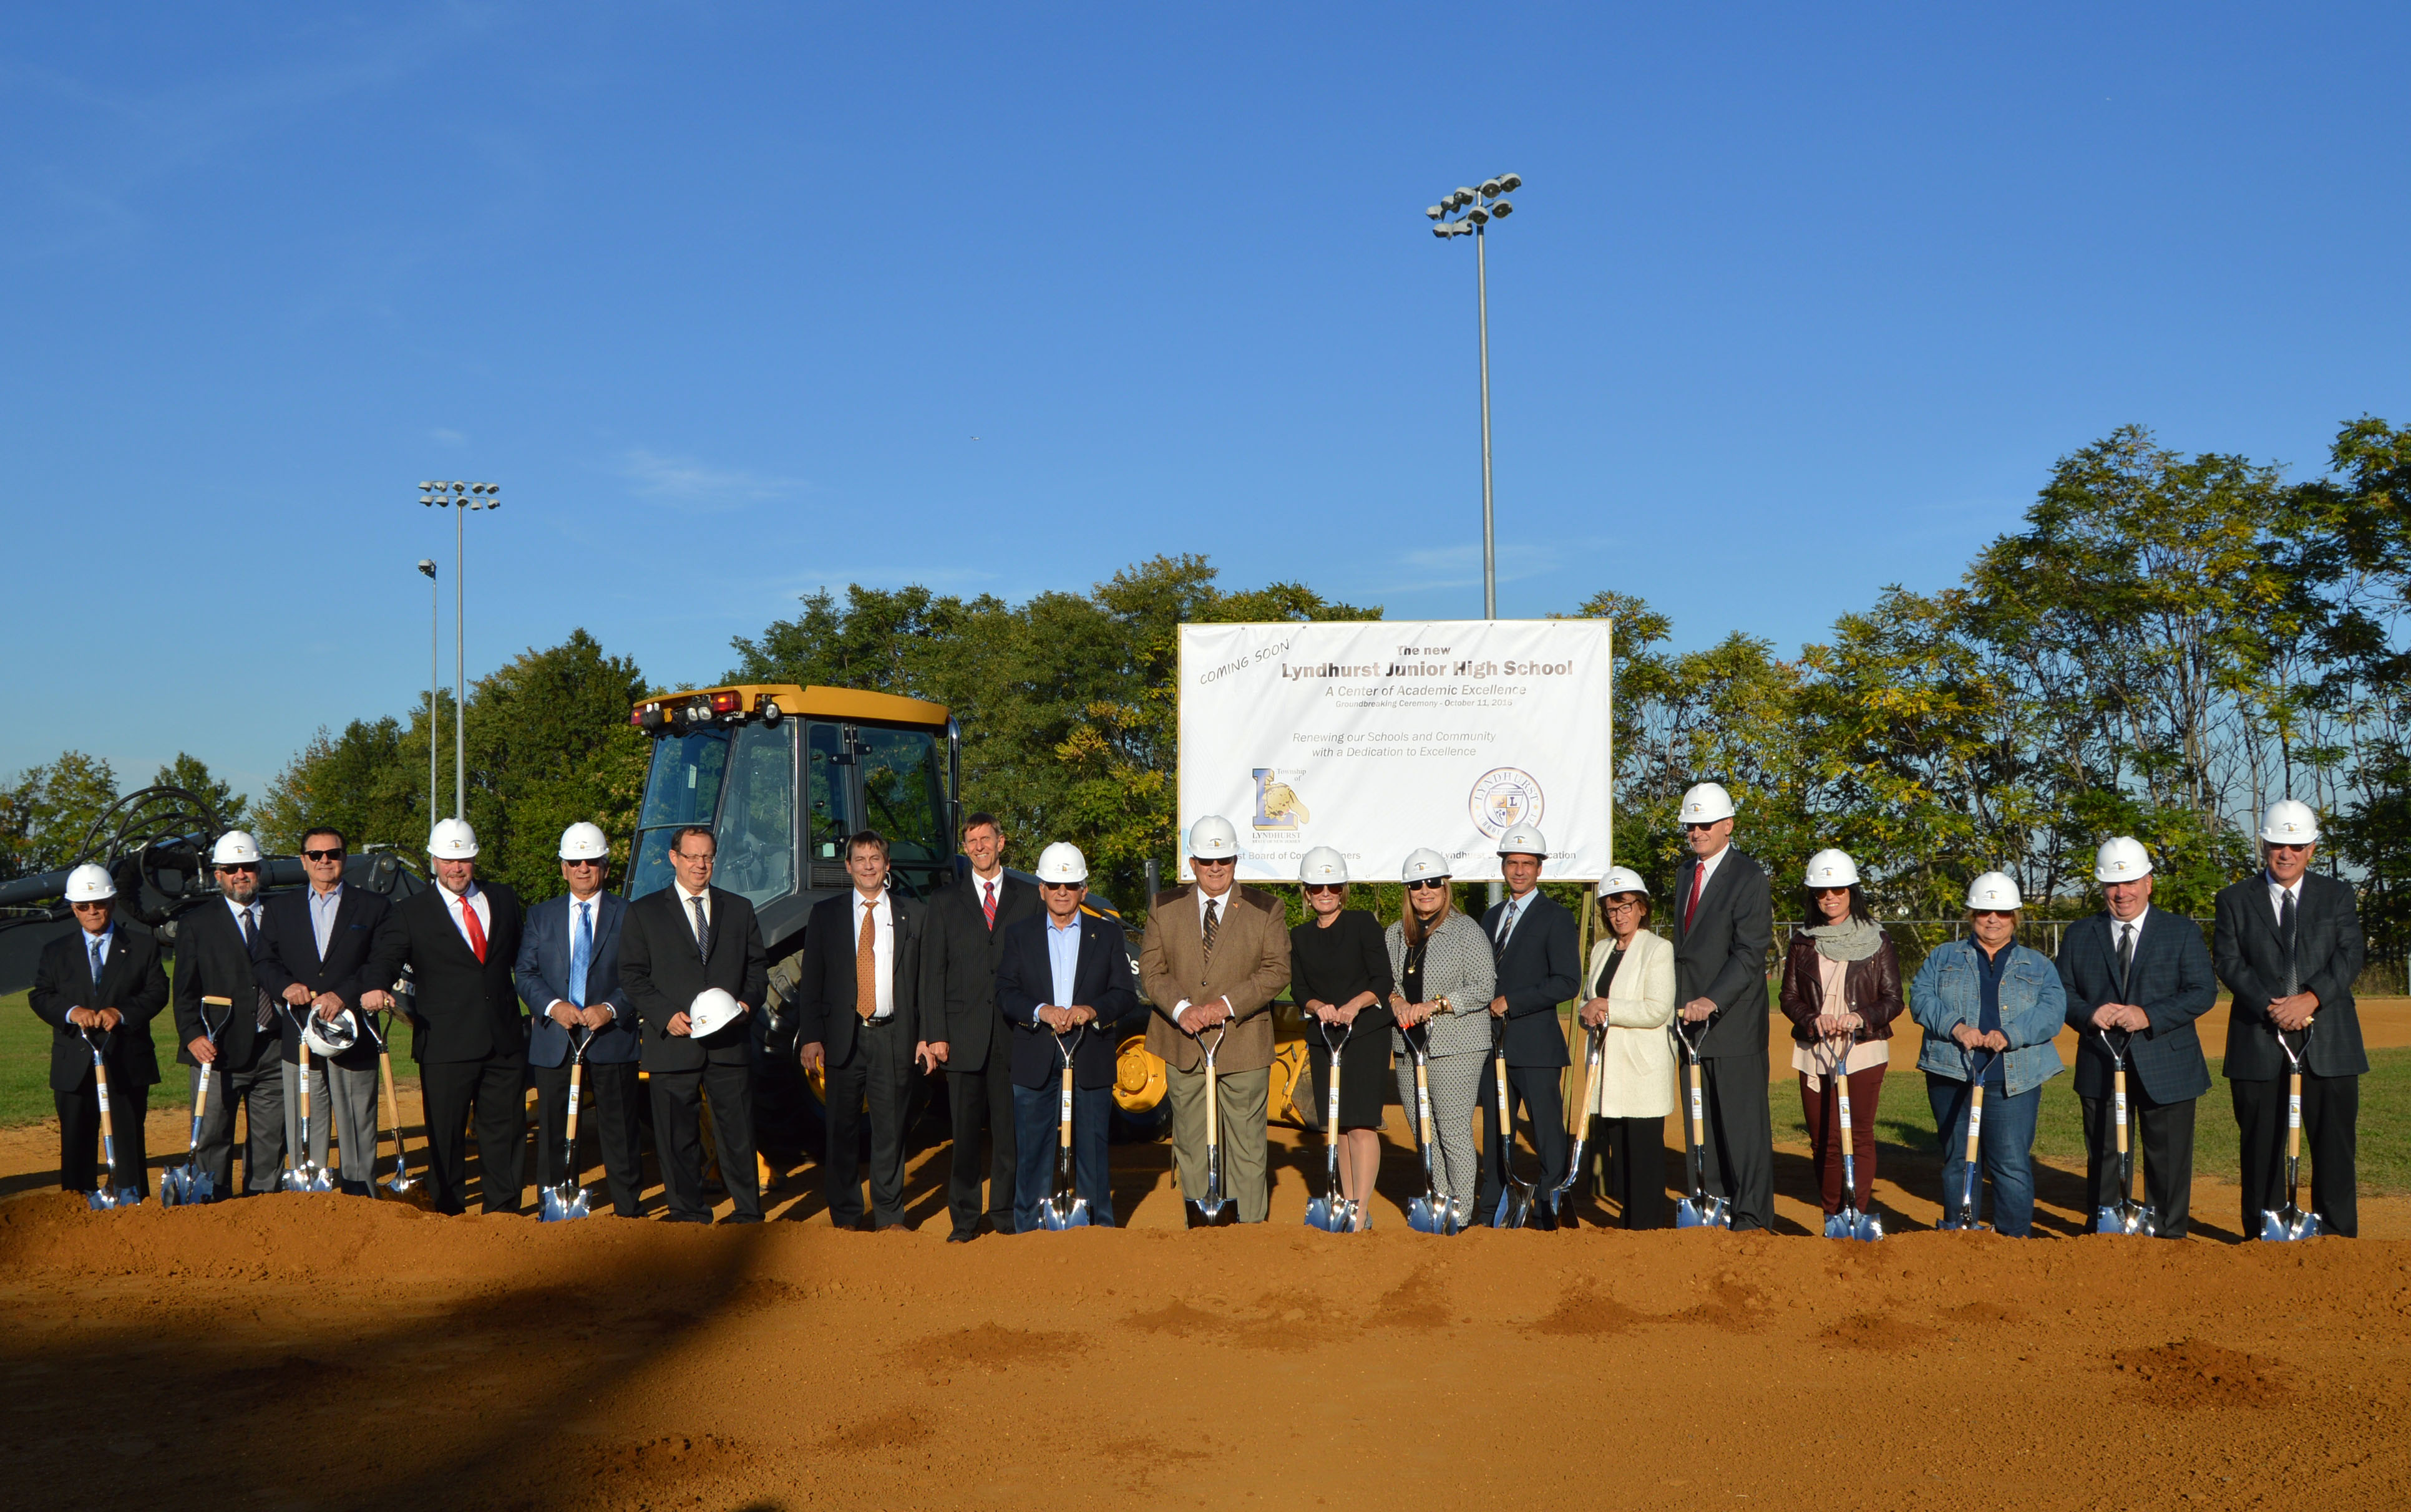 Lyndhurst Jr. HS Groundbreaking